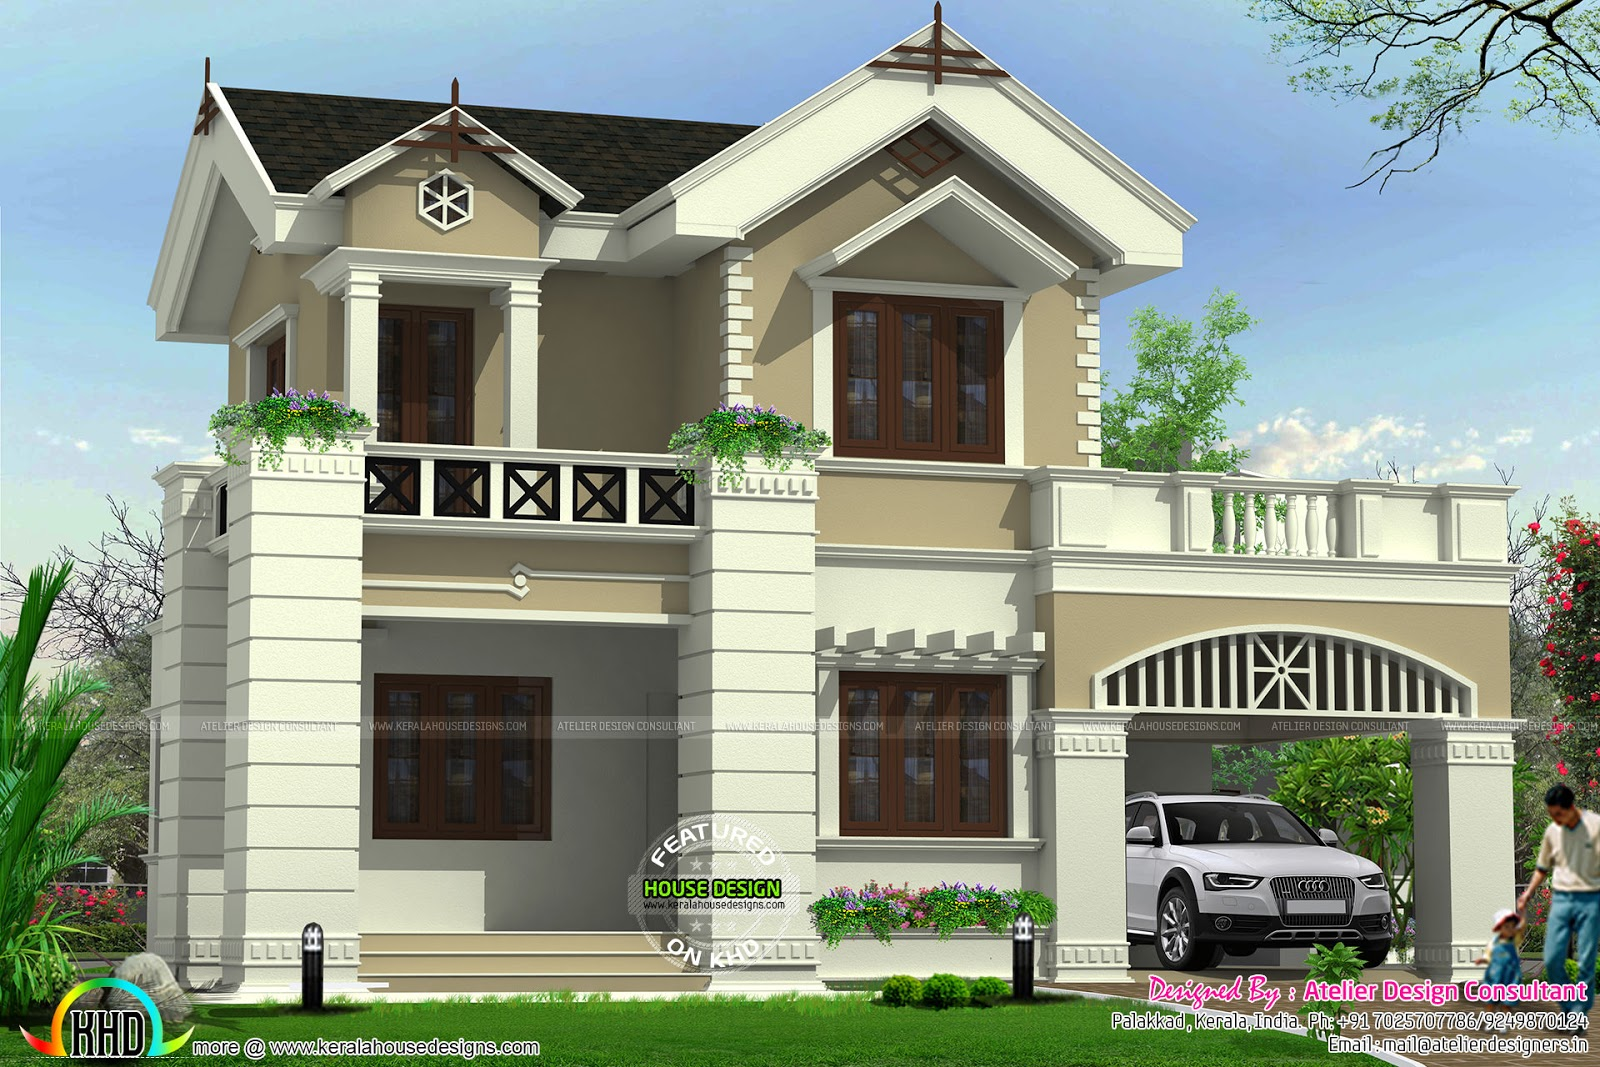 Cute victorian model home kerala home design and floor plans for Model home plans